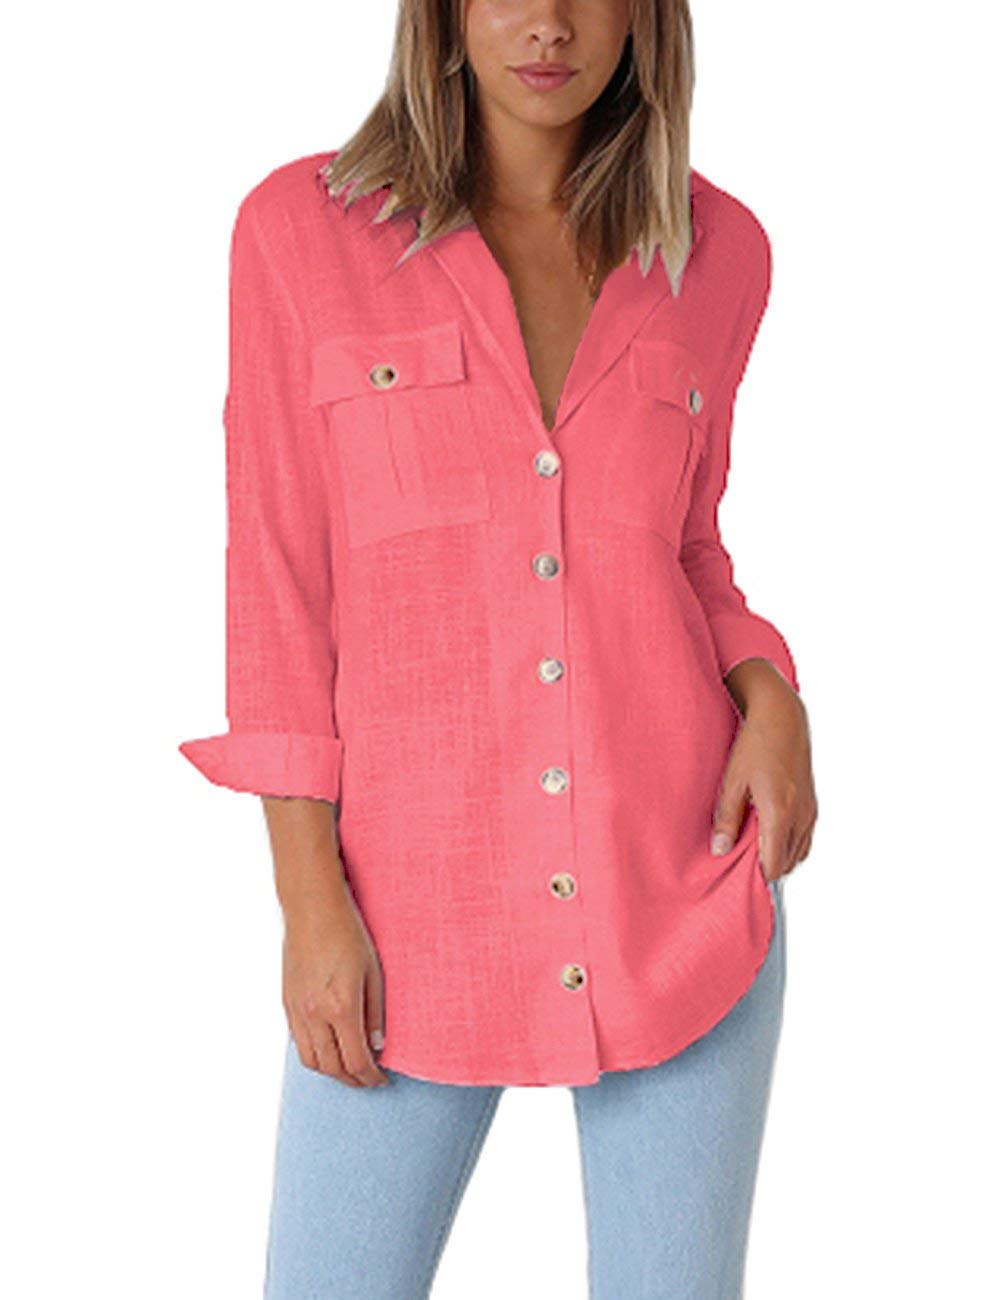 MIDOSOO Womens Button Down V Neck Chiffon 3/4 Sleeve Pocket Casual Blouses SolidTops Red M